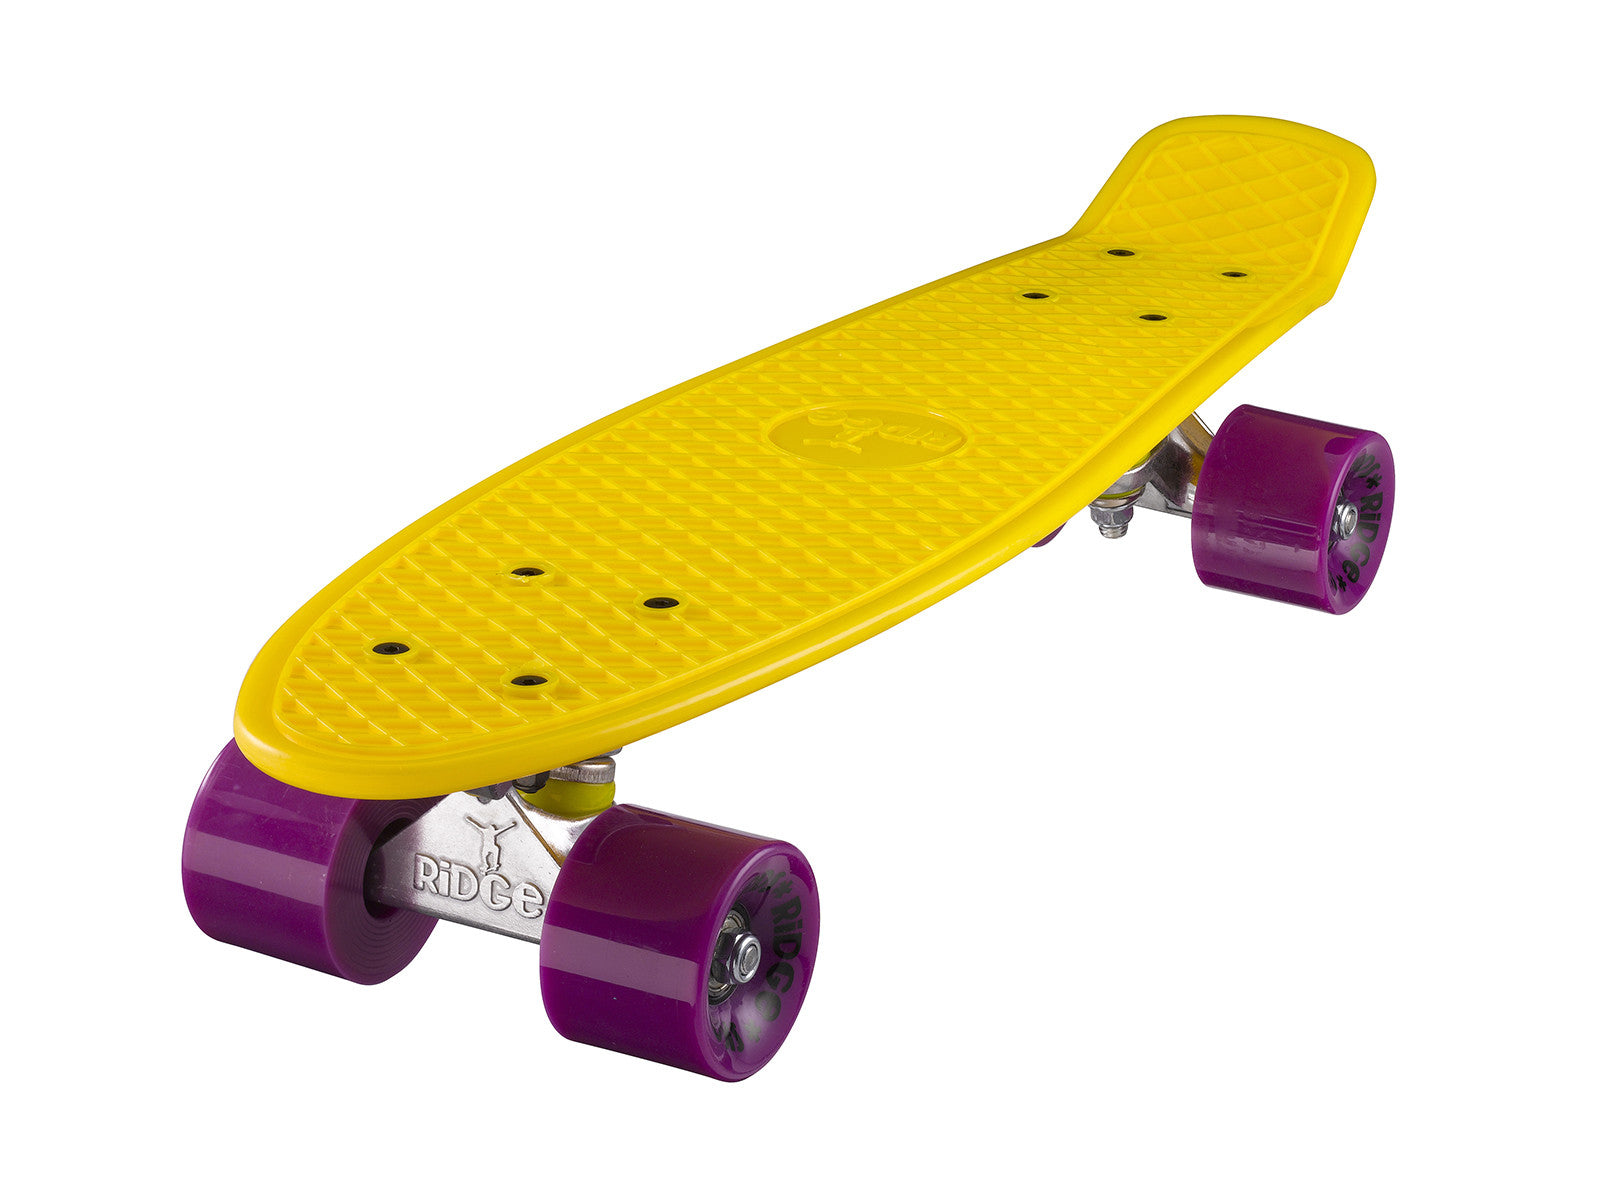 "Ridge 22"" Mini Cruiser complete board in yellow with a choice of 12 wheel colours"